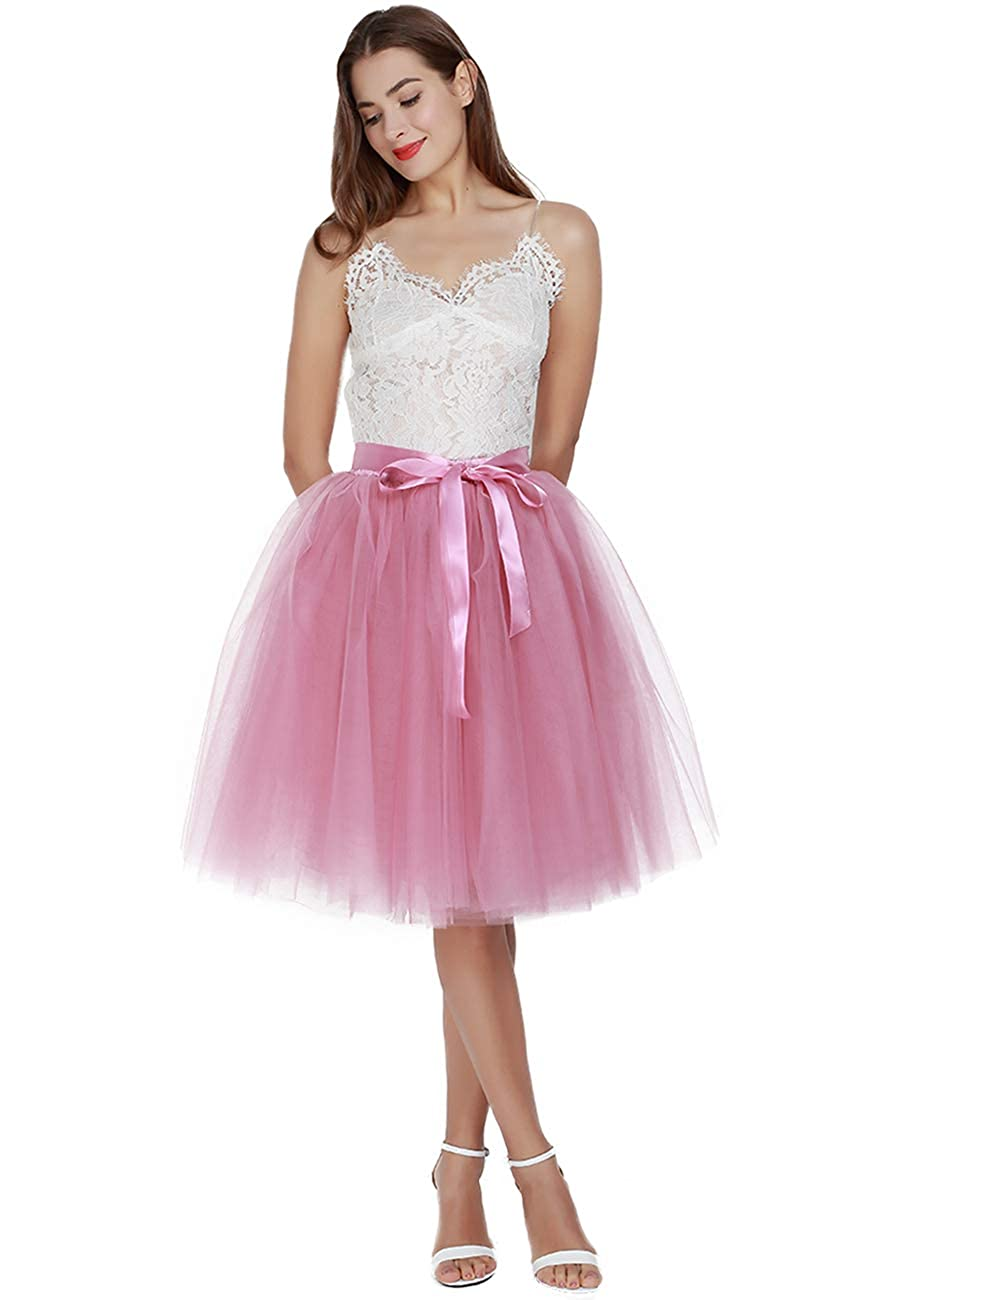 80s Prom Dresses – Party, Cocktail, Bridesmaid, Formal Womens High Waist Pleated Princess A Line Midi/Knee Length Tutu Tulle Skirt for Prom Party $41.00 AT vintagedancer.com